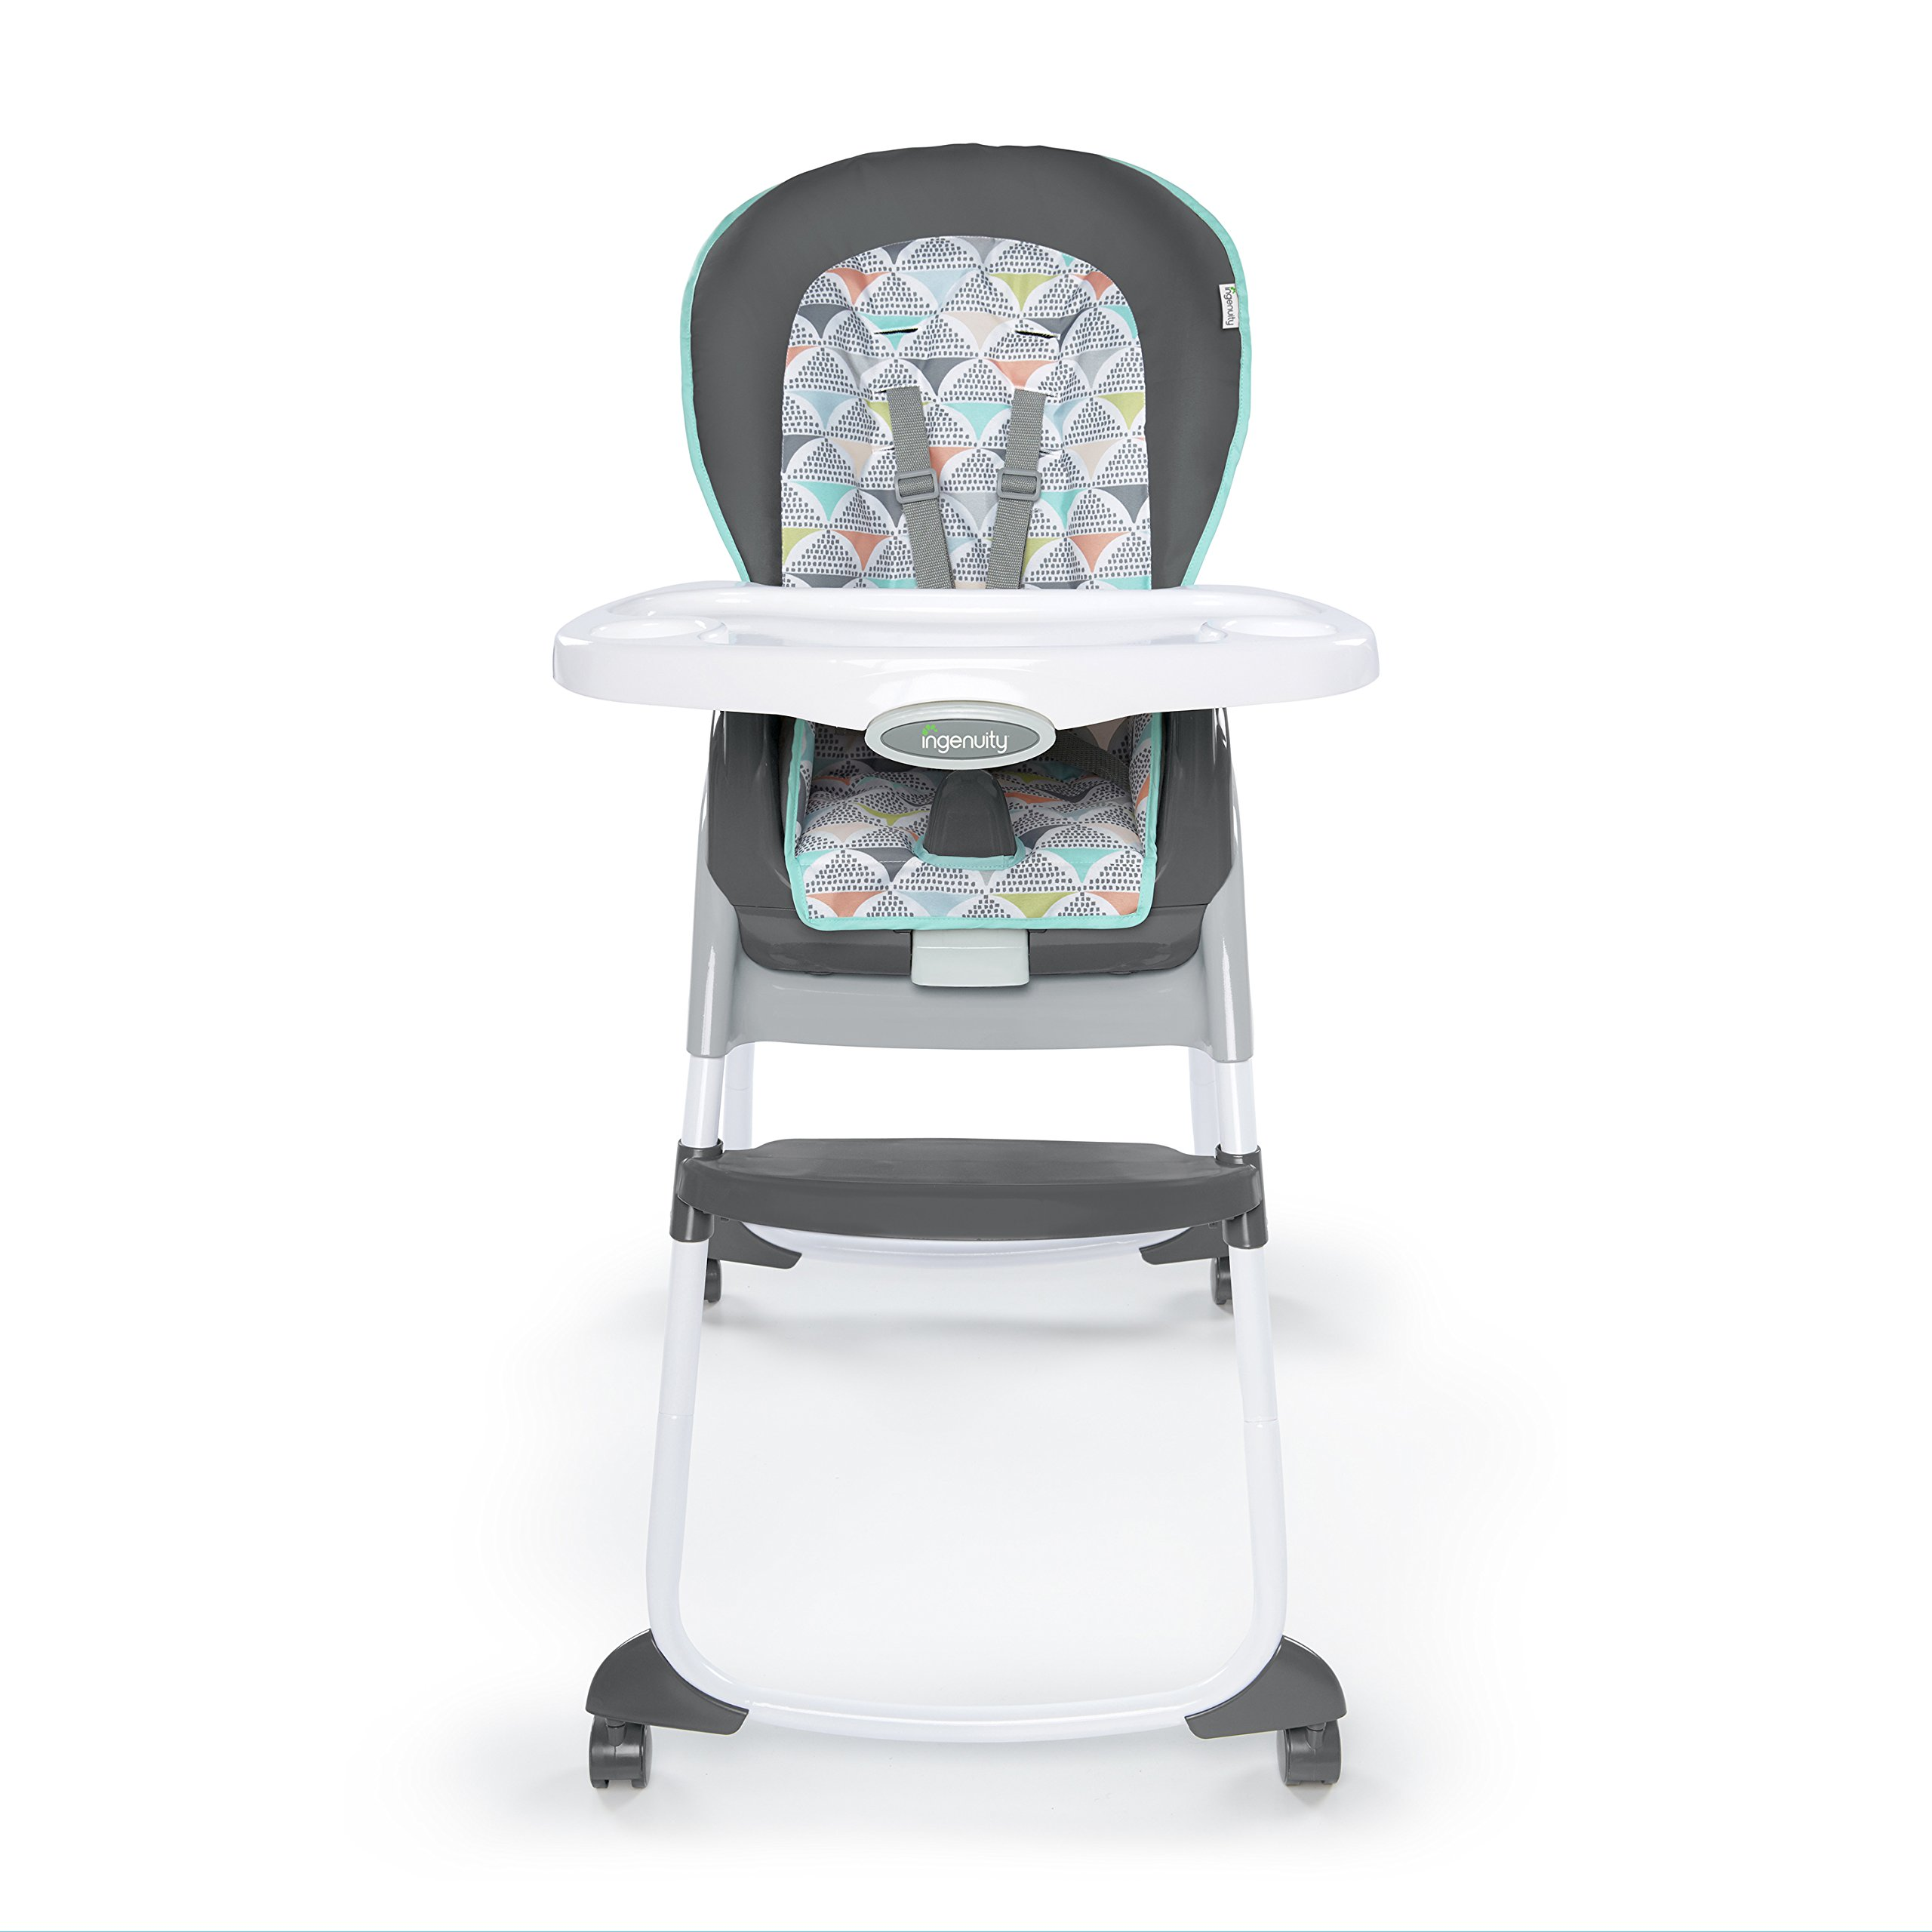 Ingenuity Trio 3-in-1 High Chair - Bryant - High Chair, Toddler Chair, and Booster